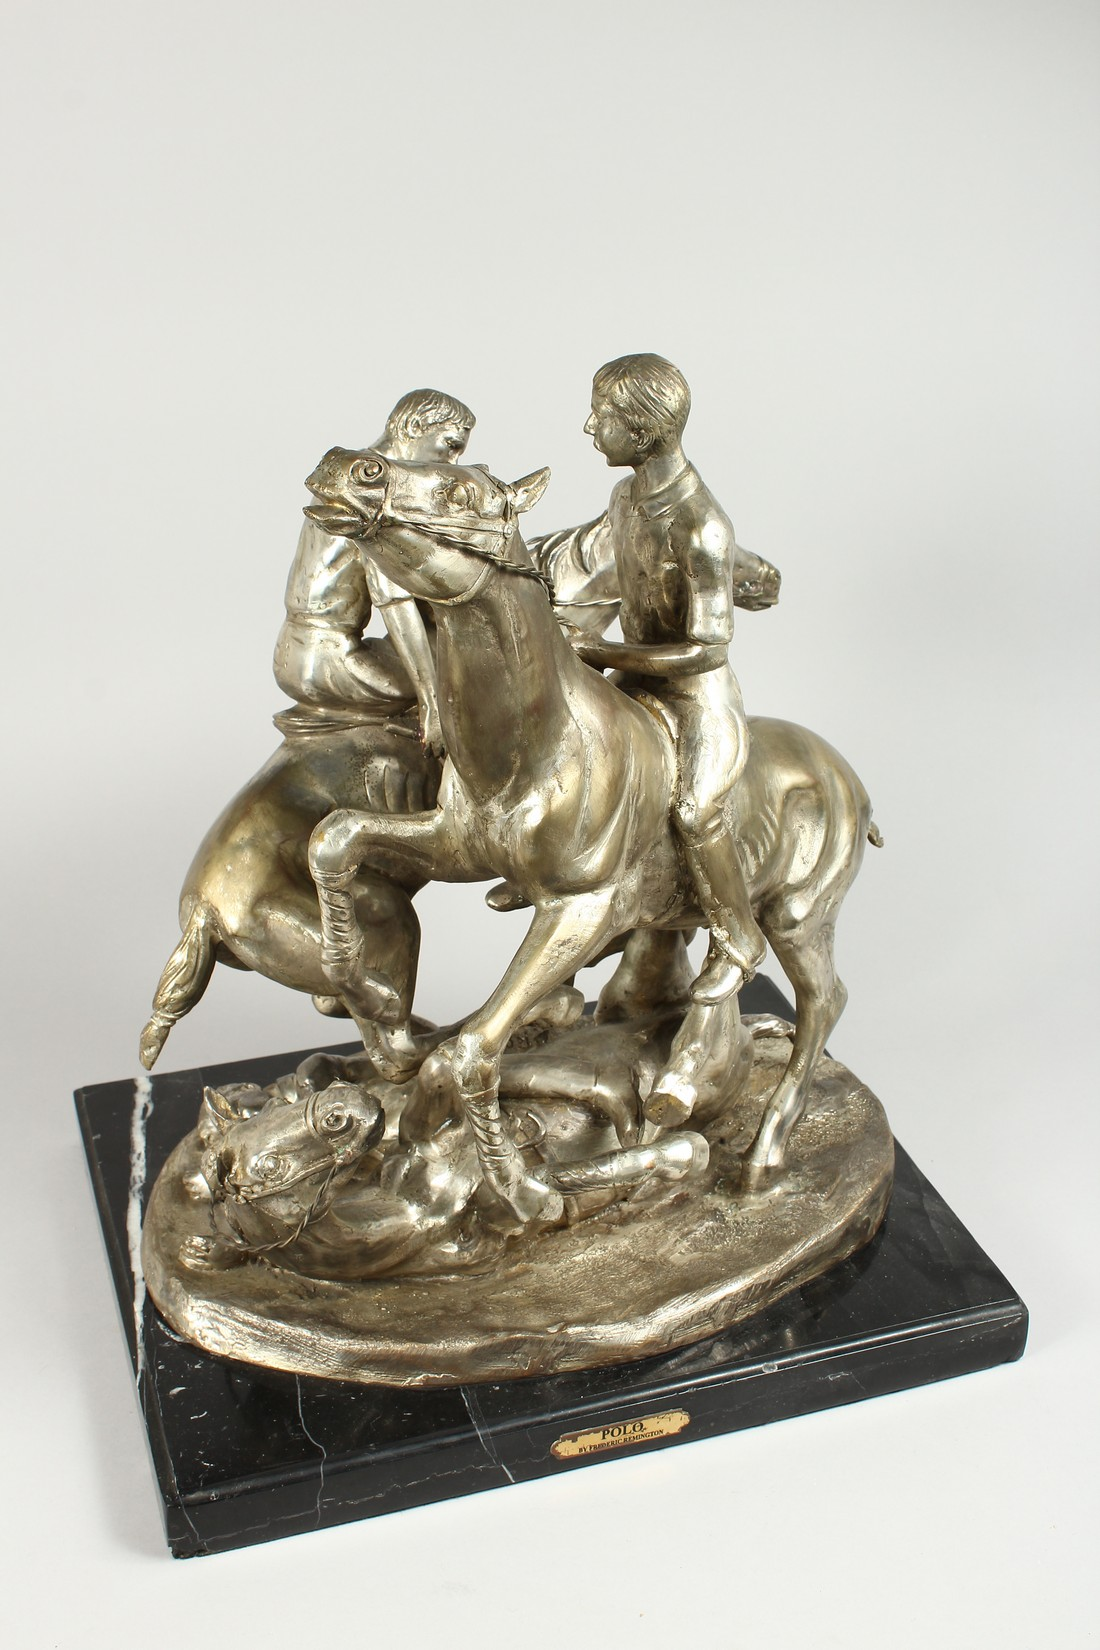 AFTER F. REMMINGTON A SILVER BRONZE GROUP OF TWO RIDERS ON HORSEBACK, a horn and rider on the floor. - Image 2 of 16